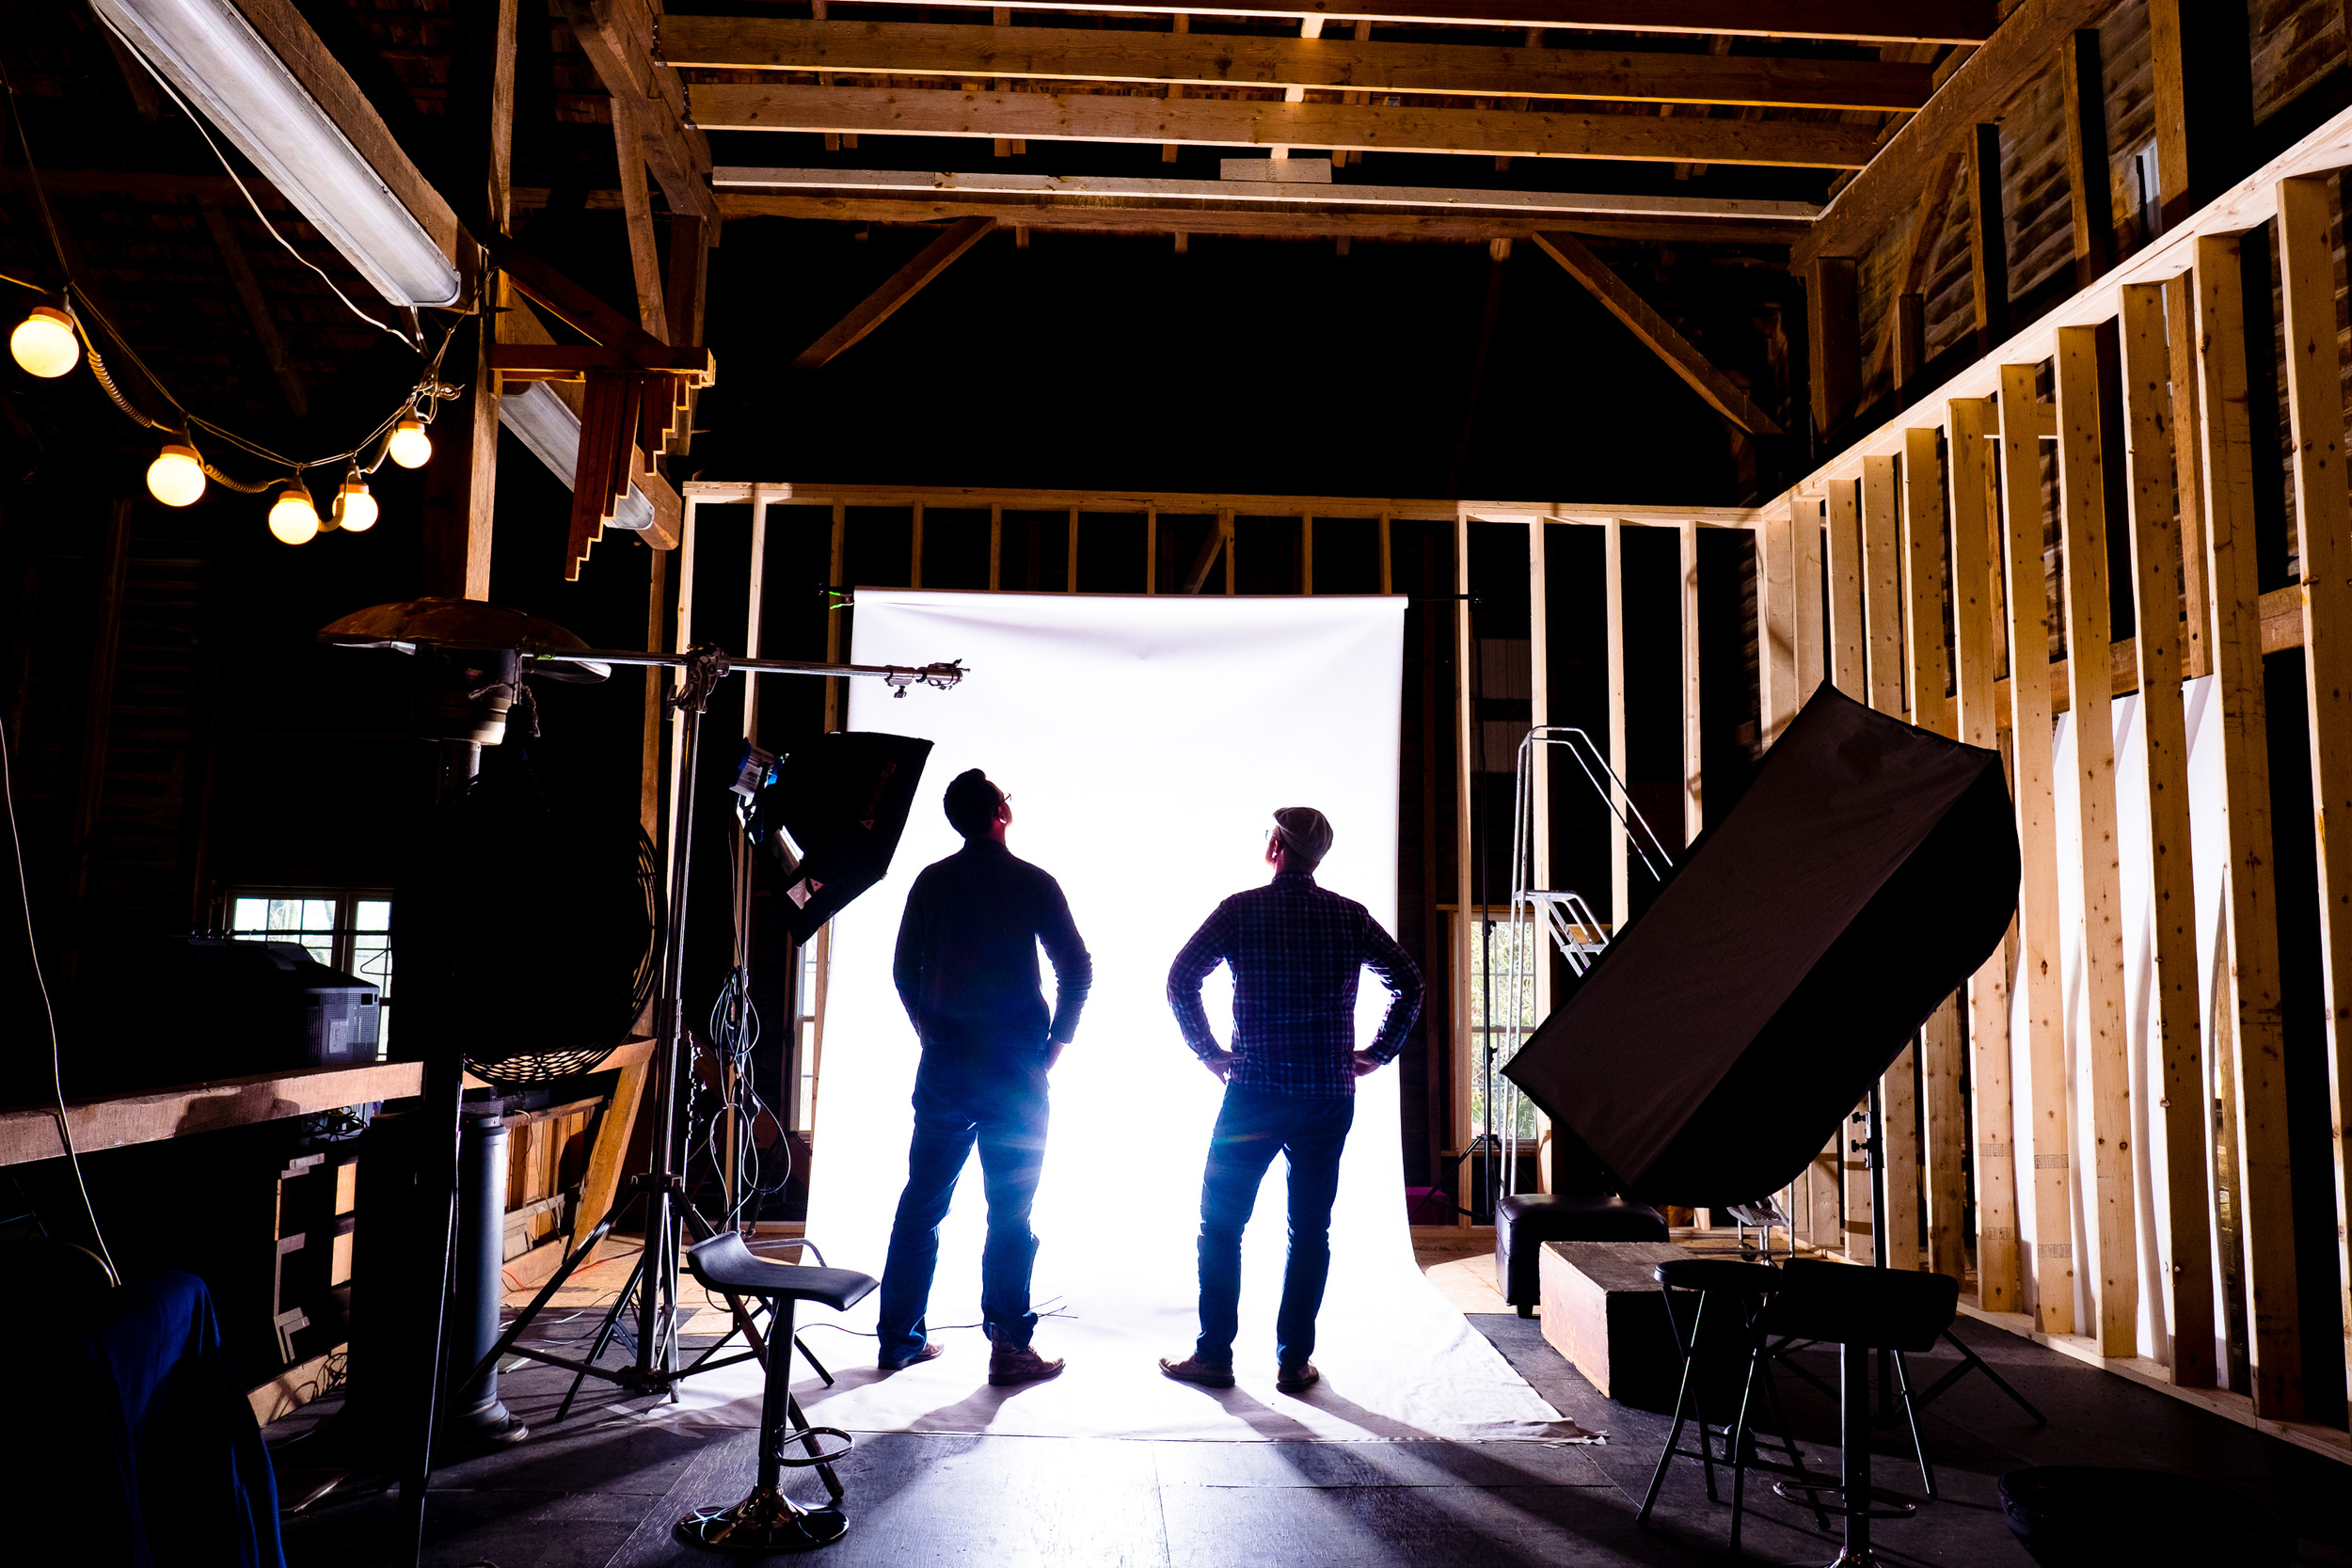 Jeff and Sten admiring the temporary backdrop in what will become the Cyclorama room